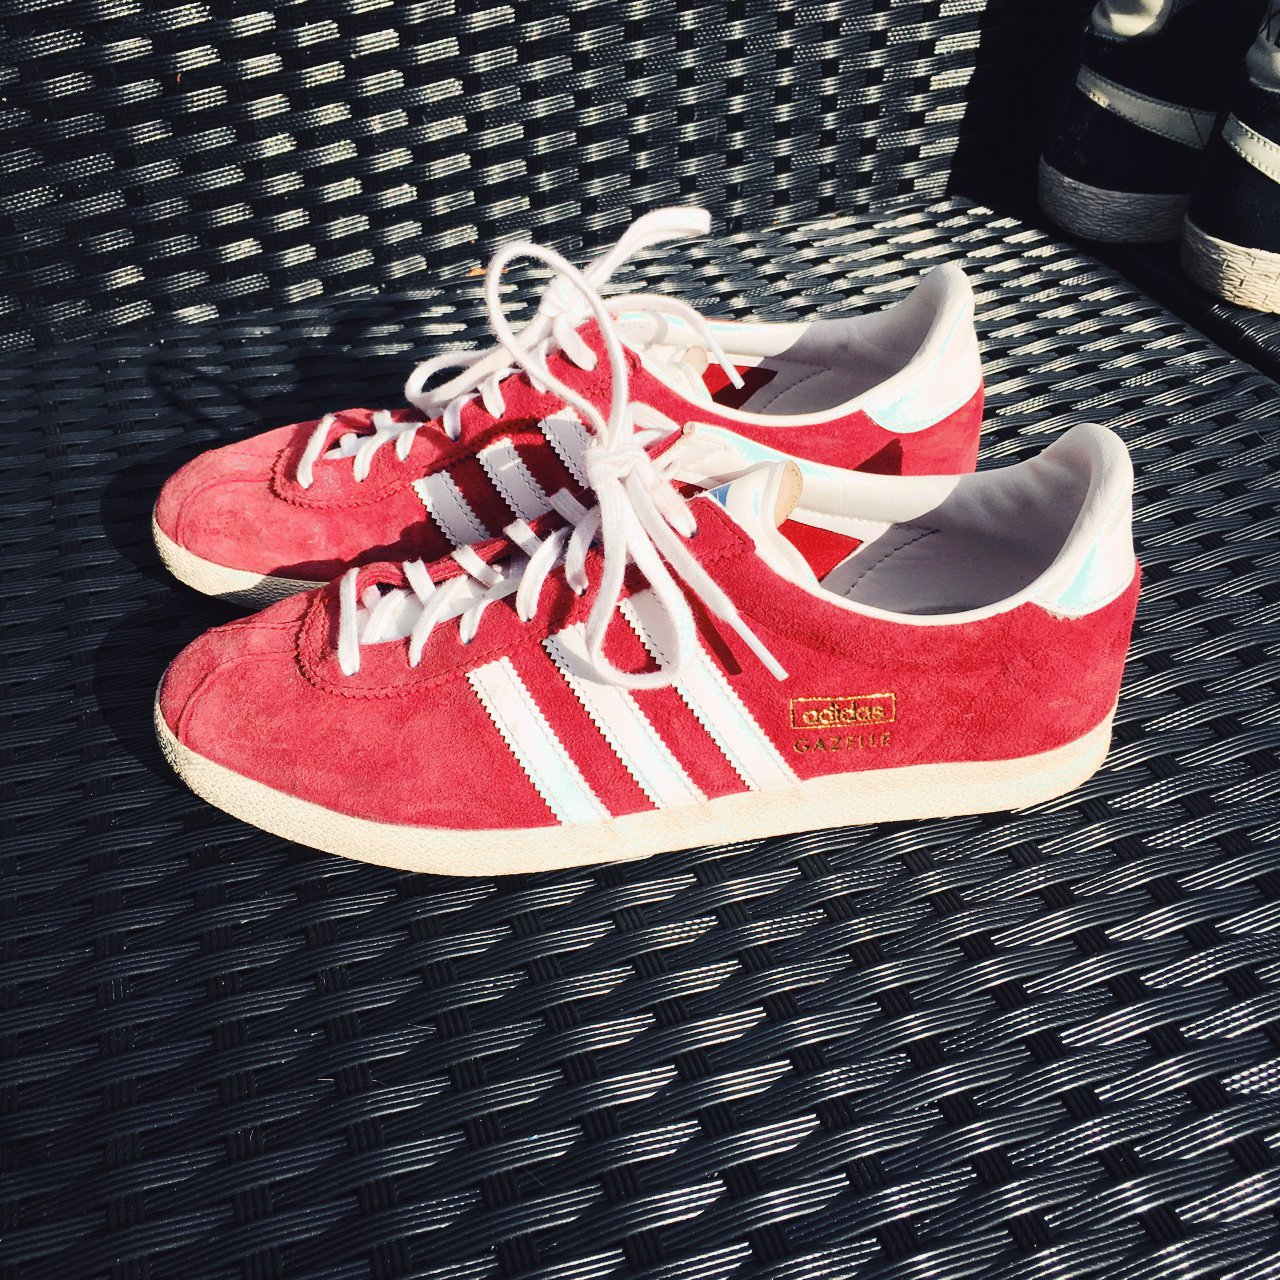 231a07f219d Adidas Gazelle trainers in red suede Great condition Size - Depop